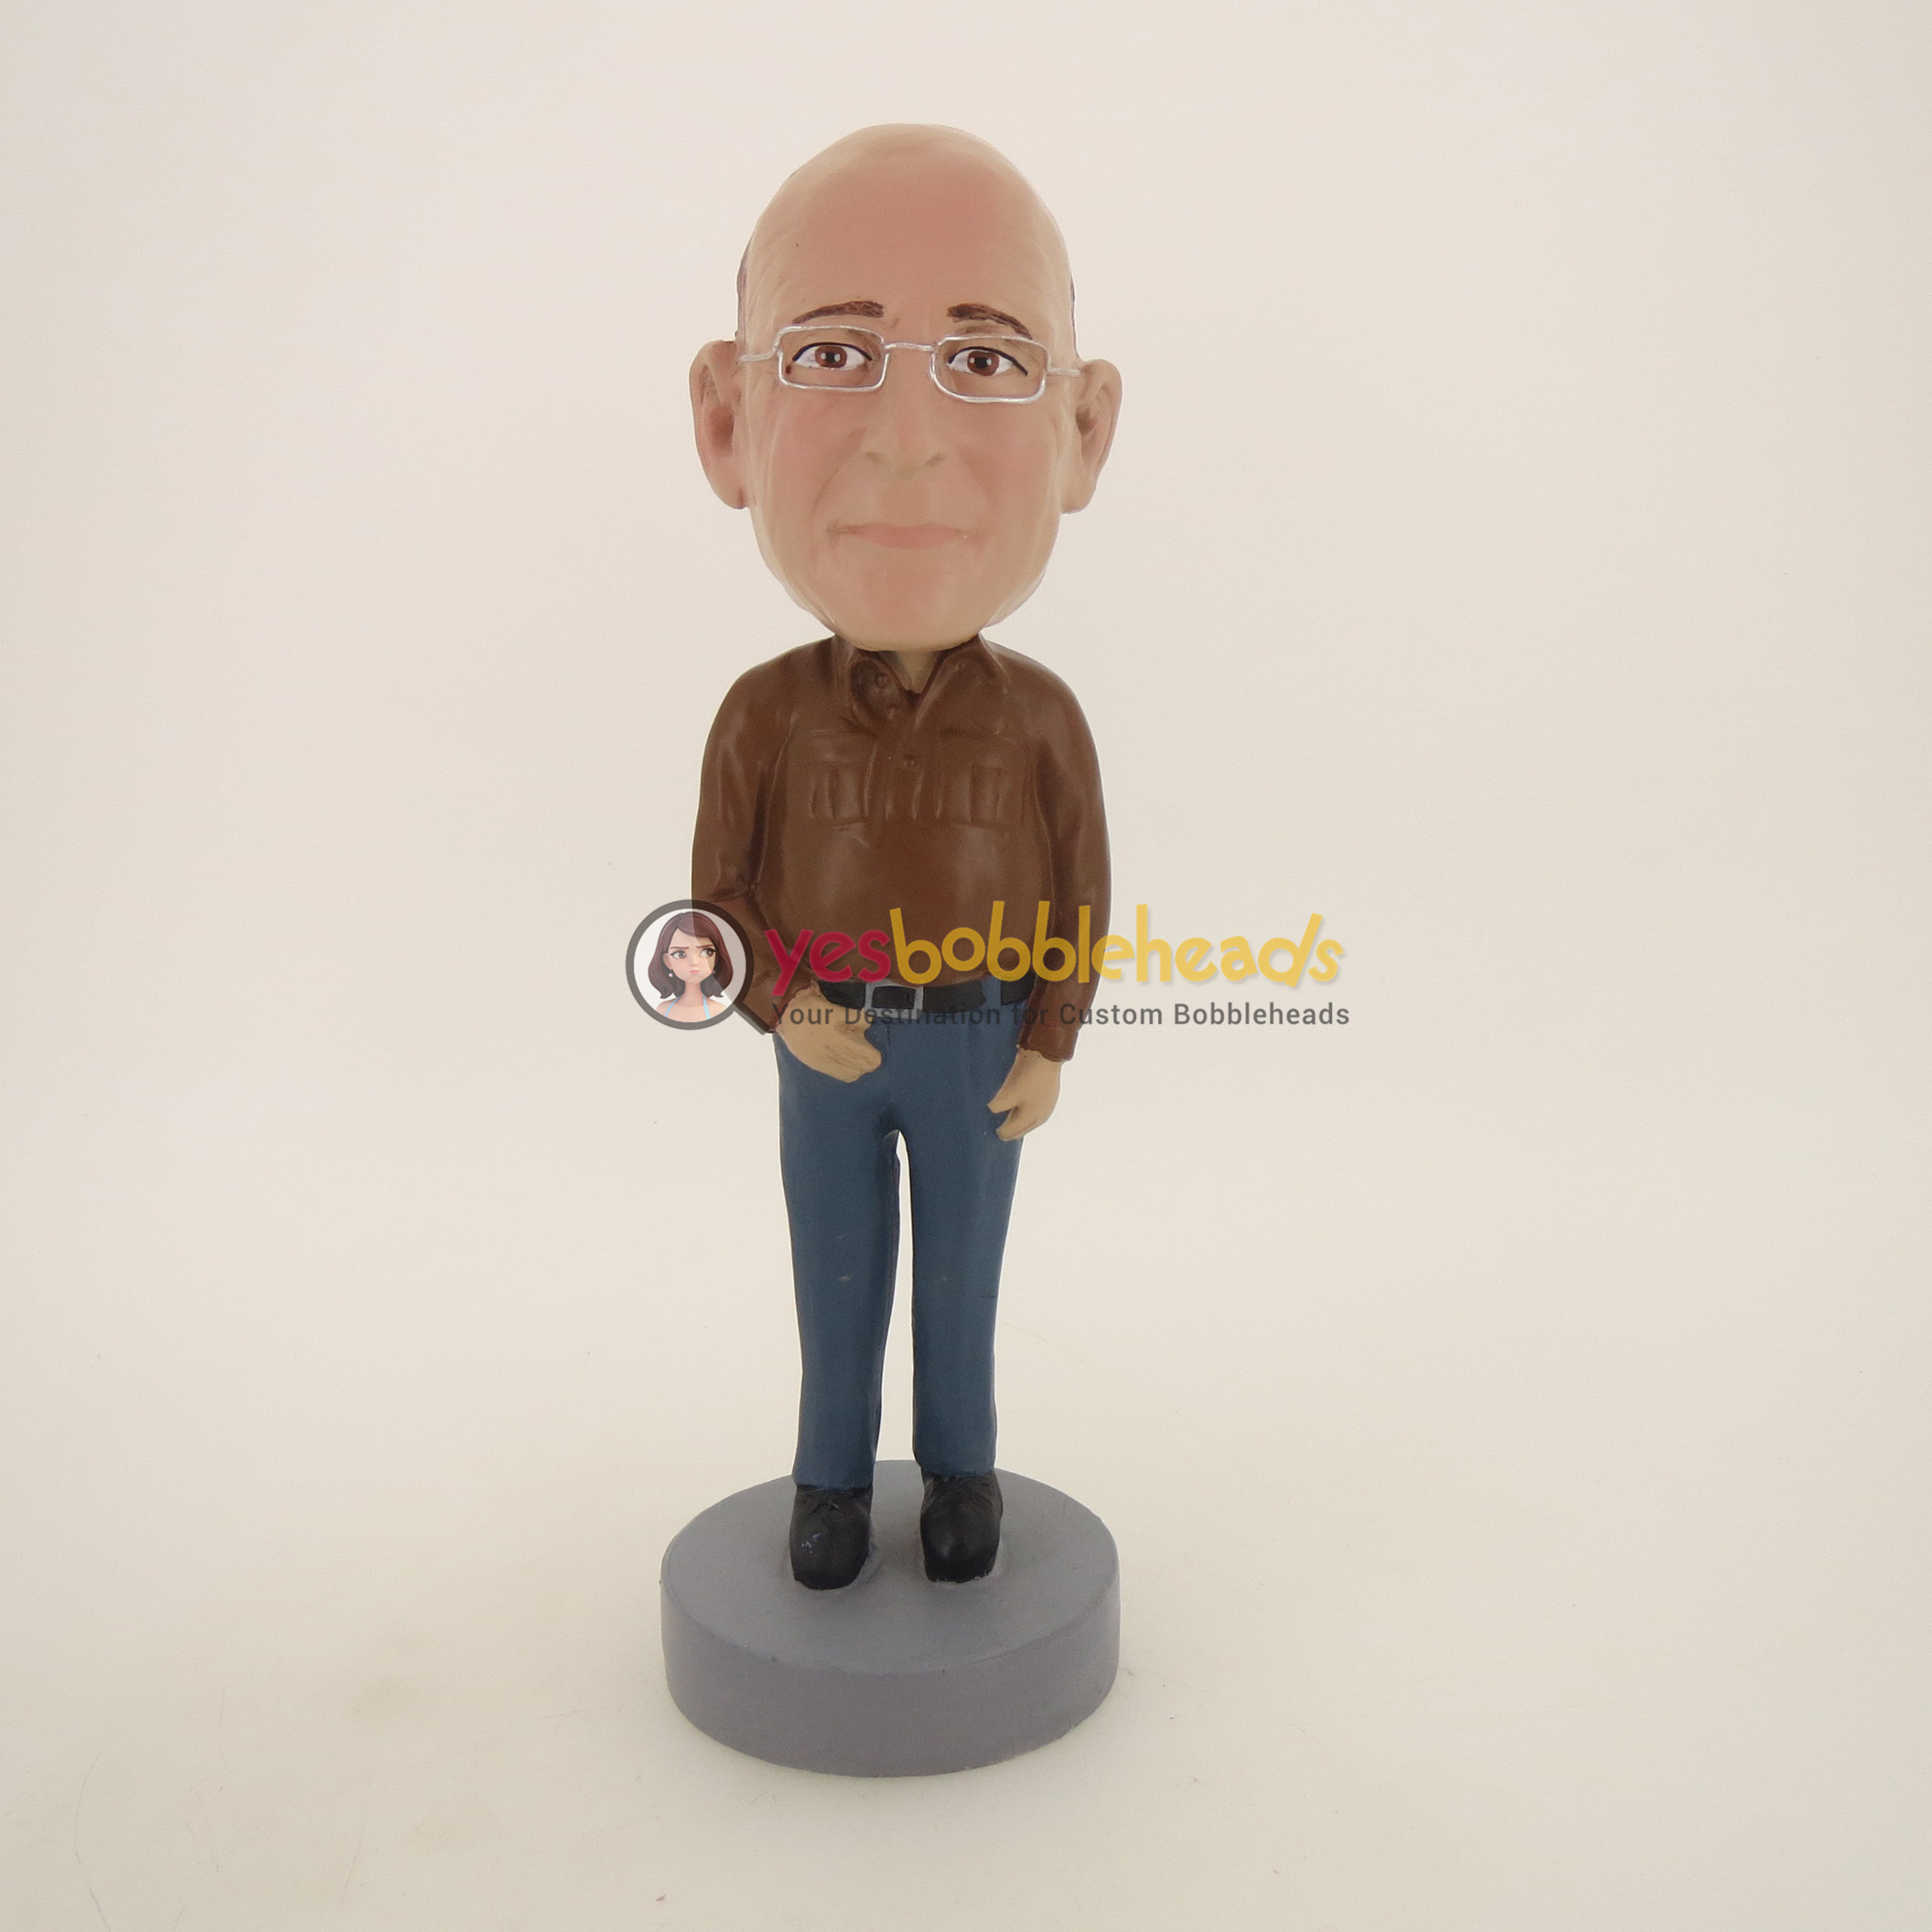 Picture of Custom Bobblehead Doll: Old Man In Brown